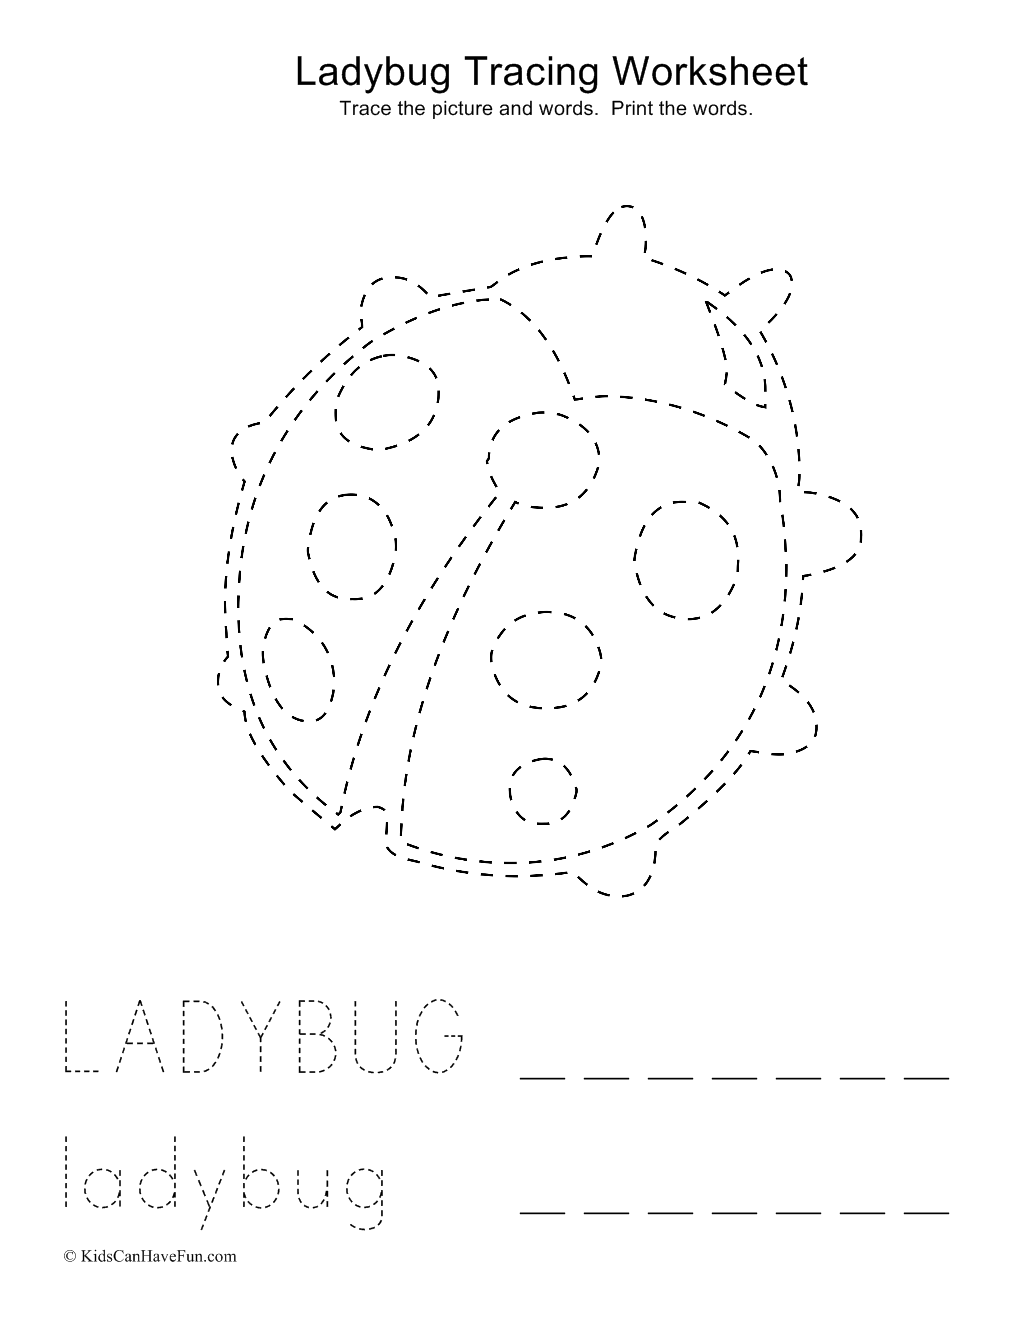 worksheet Tracing And Colouring Worksheets tracing ladybug picture and words worksheet love worksheet